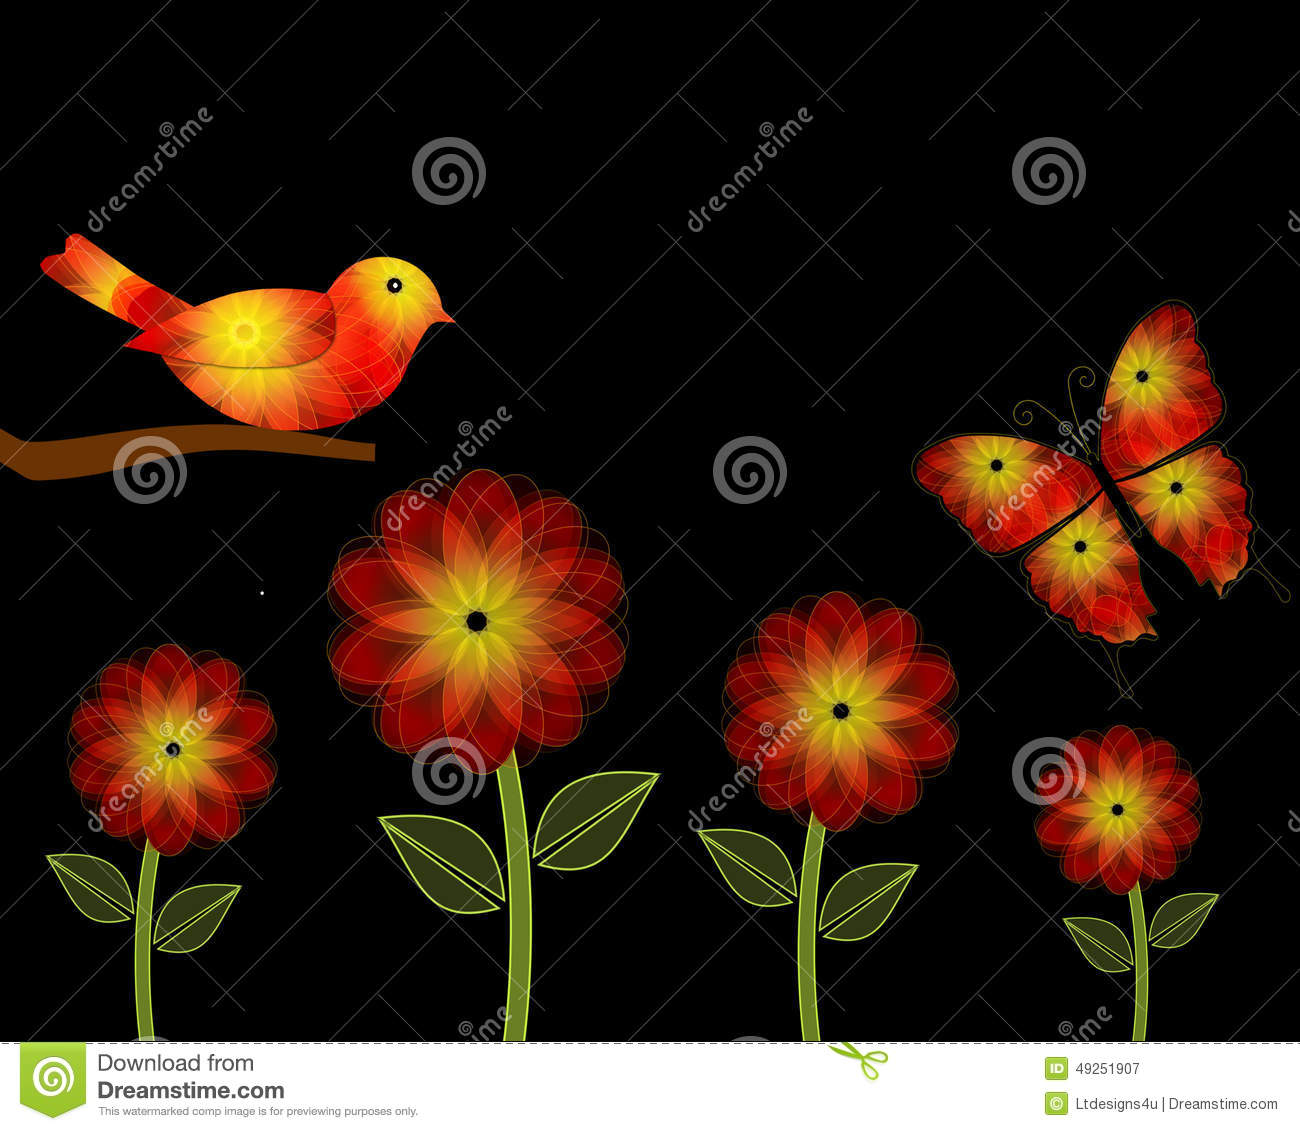 Yellow And Orange Flowers And Bird PowerPoint Background